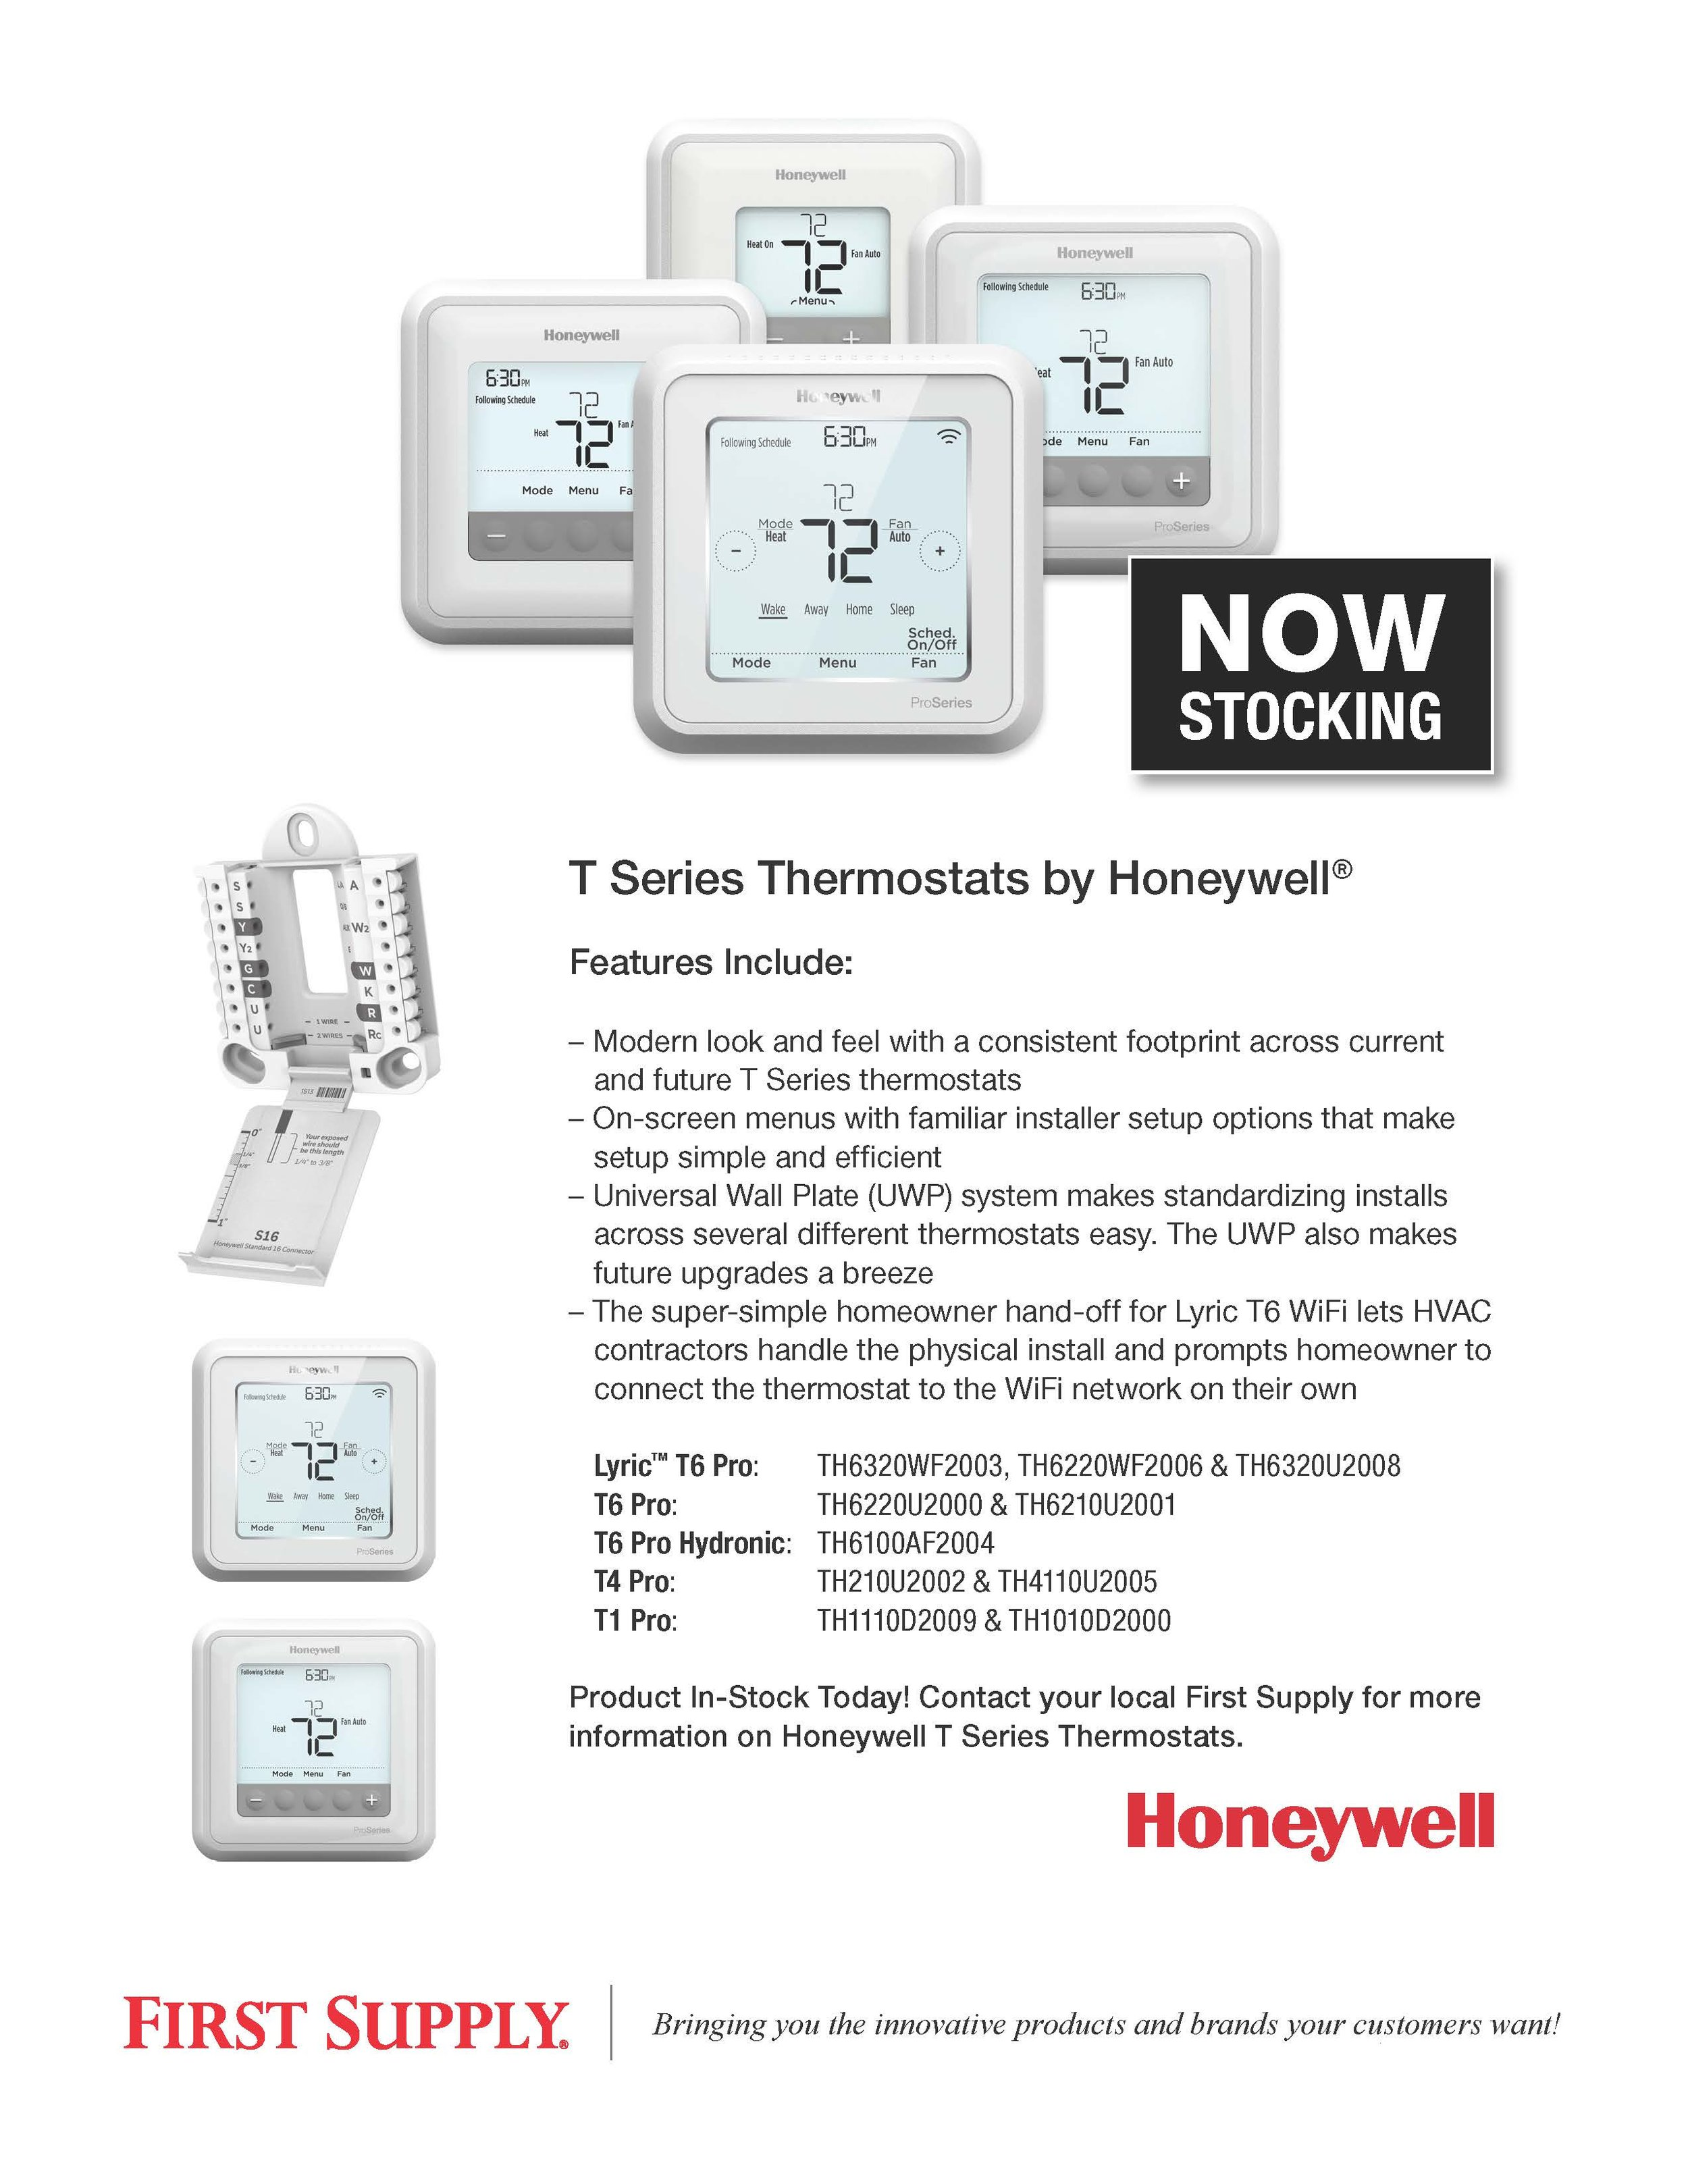 Honeywell T Series Thermostats [ download pdf ]